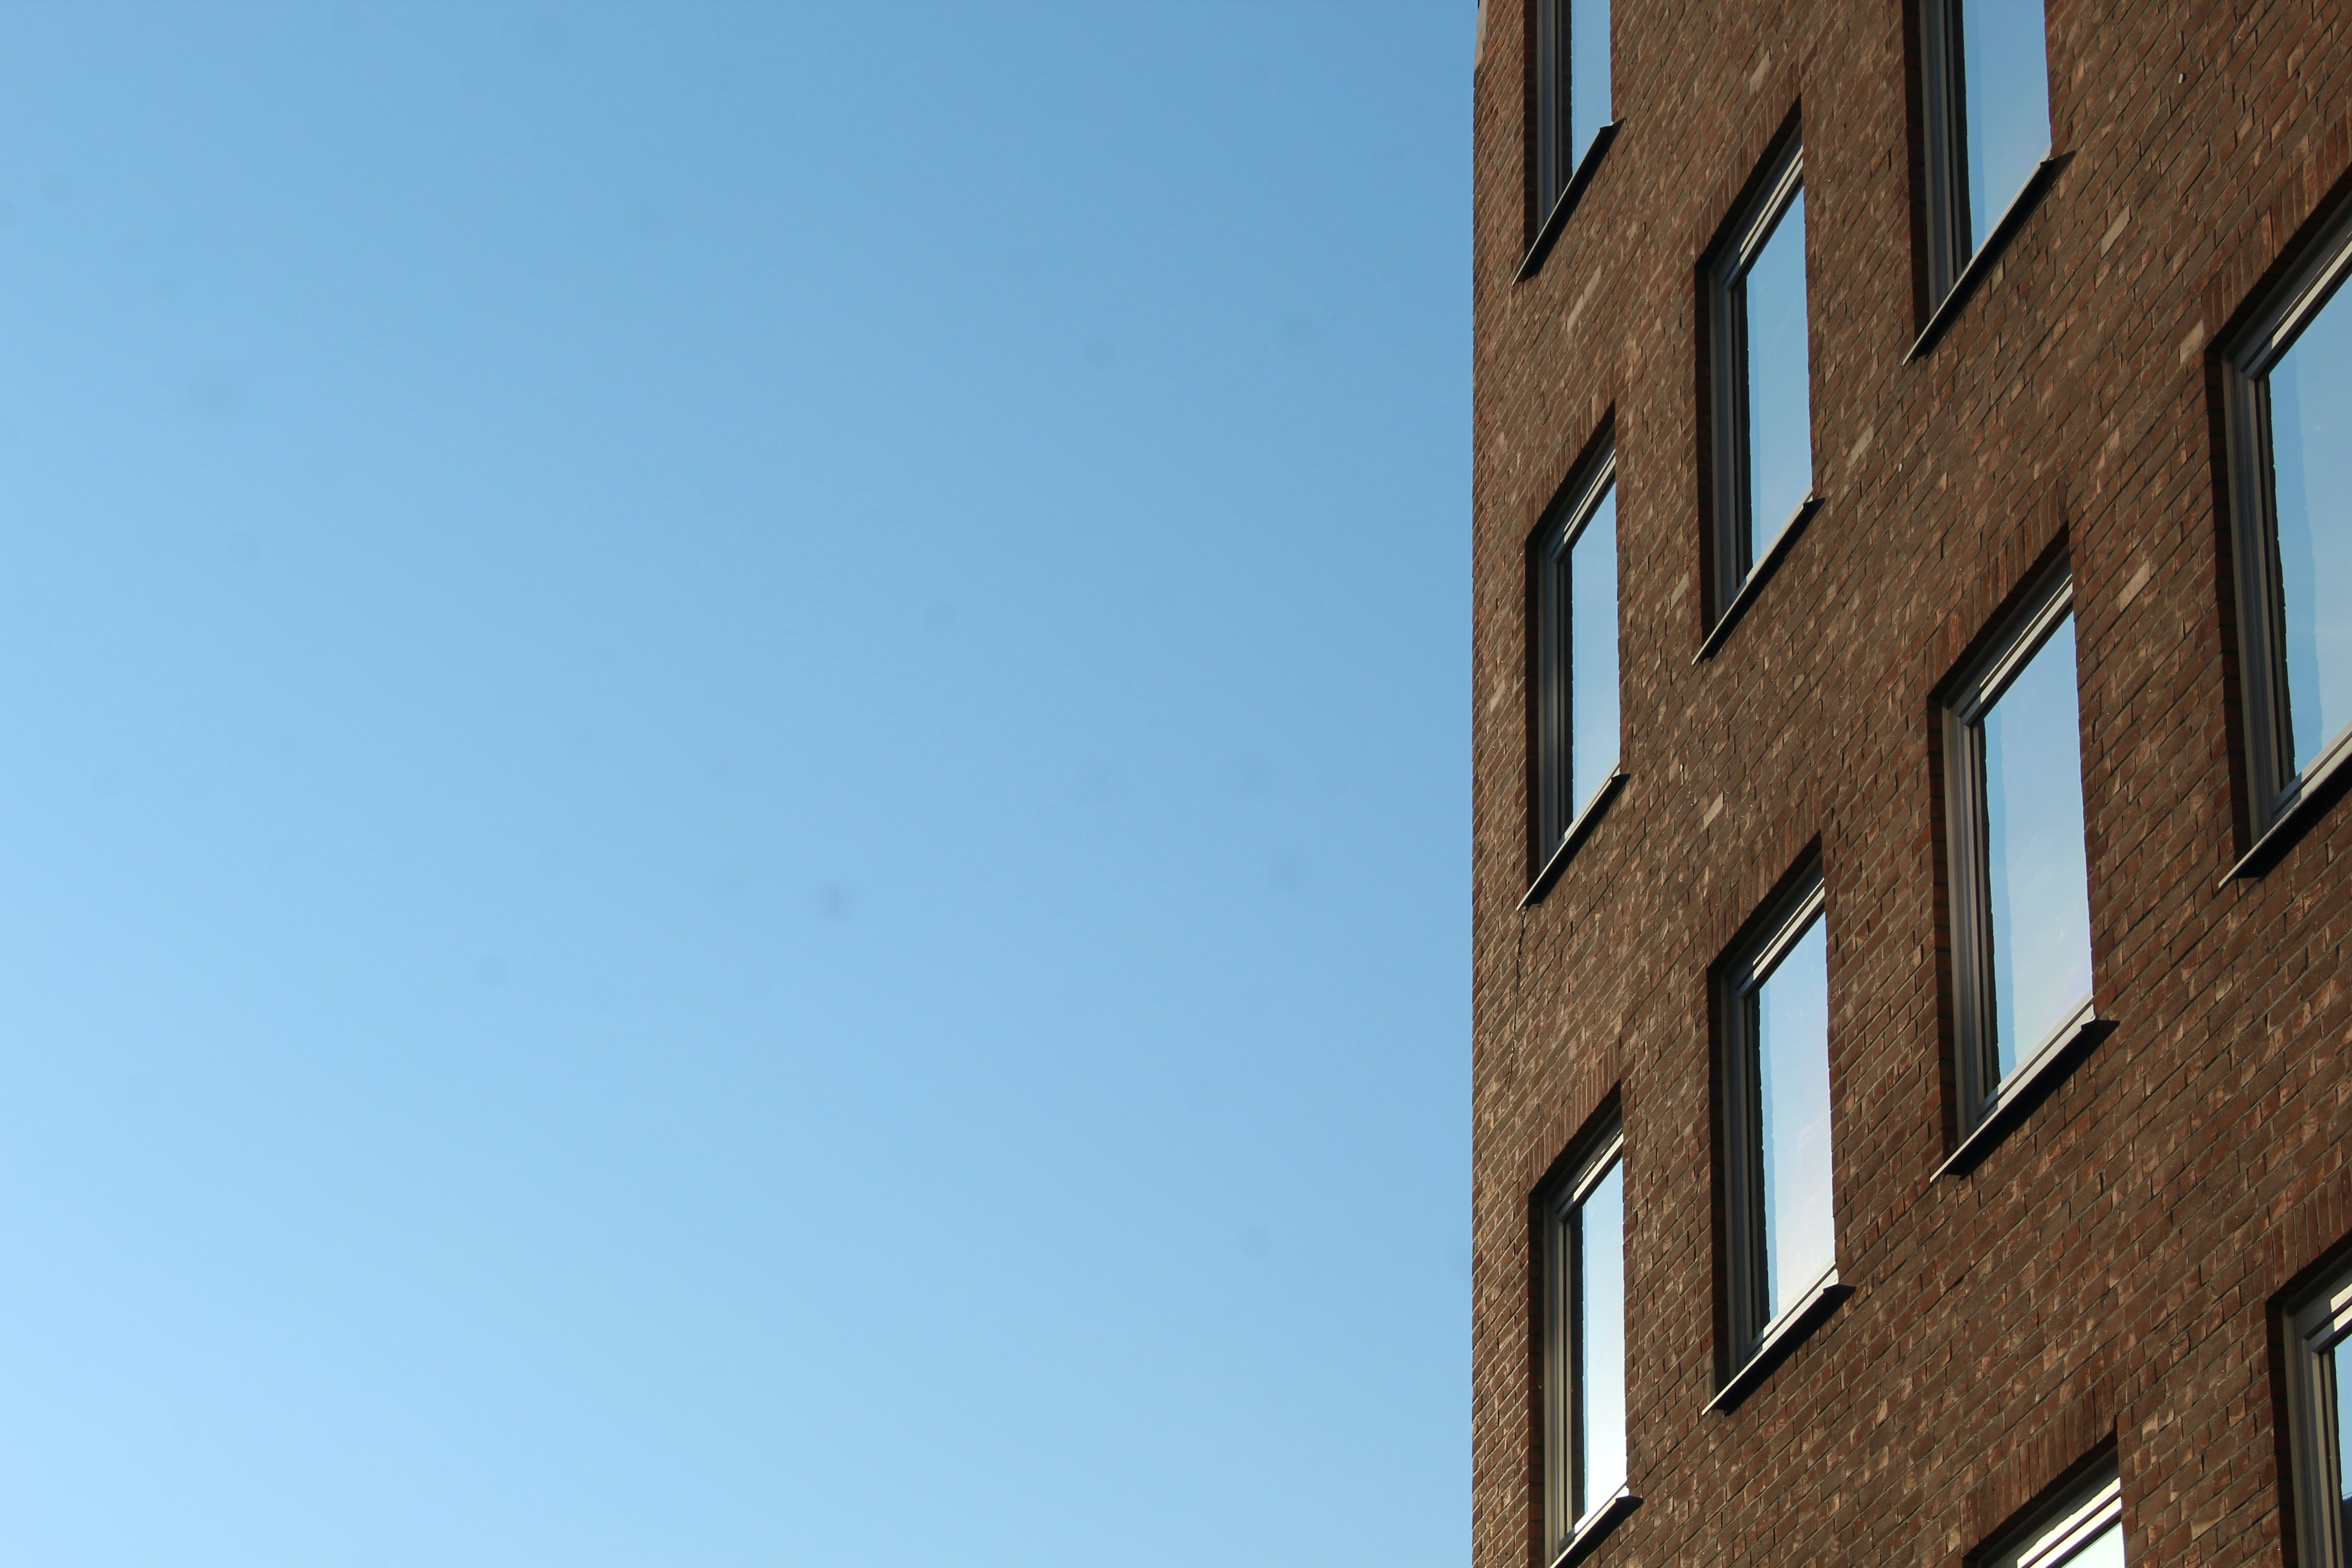 Kostenloses Stock Foto zu android wallpaper, apartment building, blue sky, free wallpaper